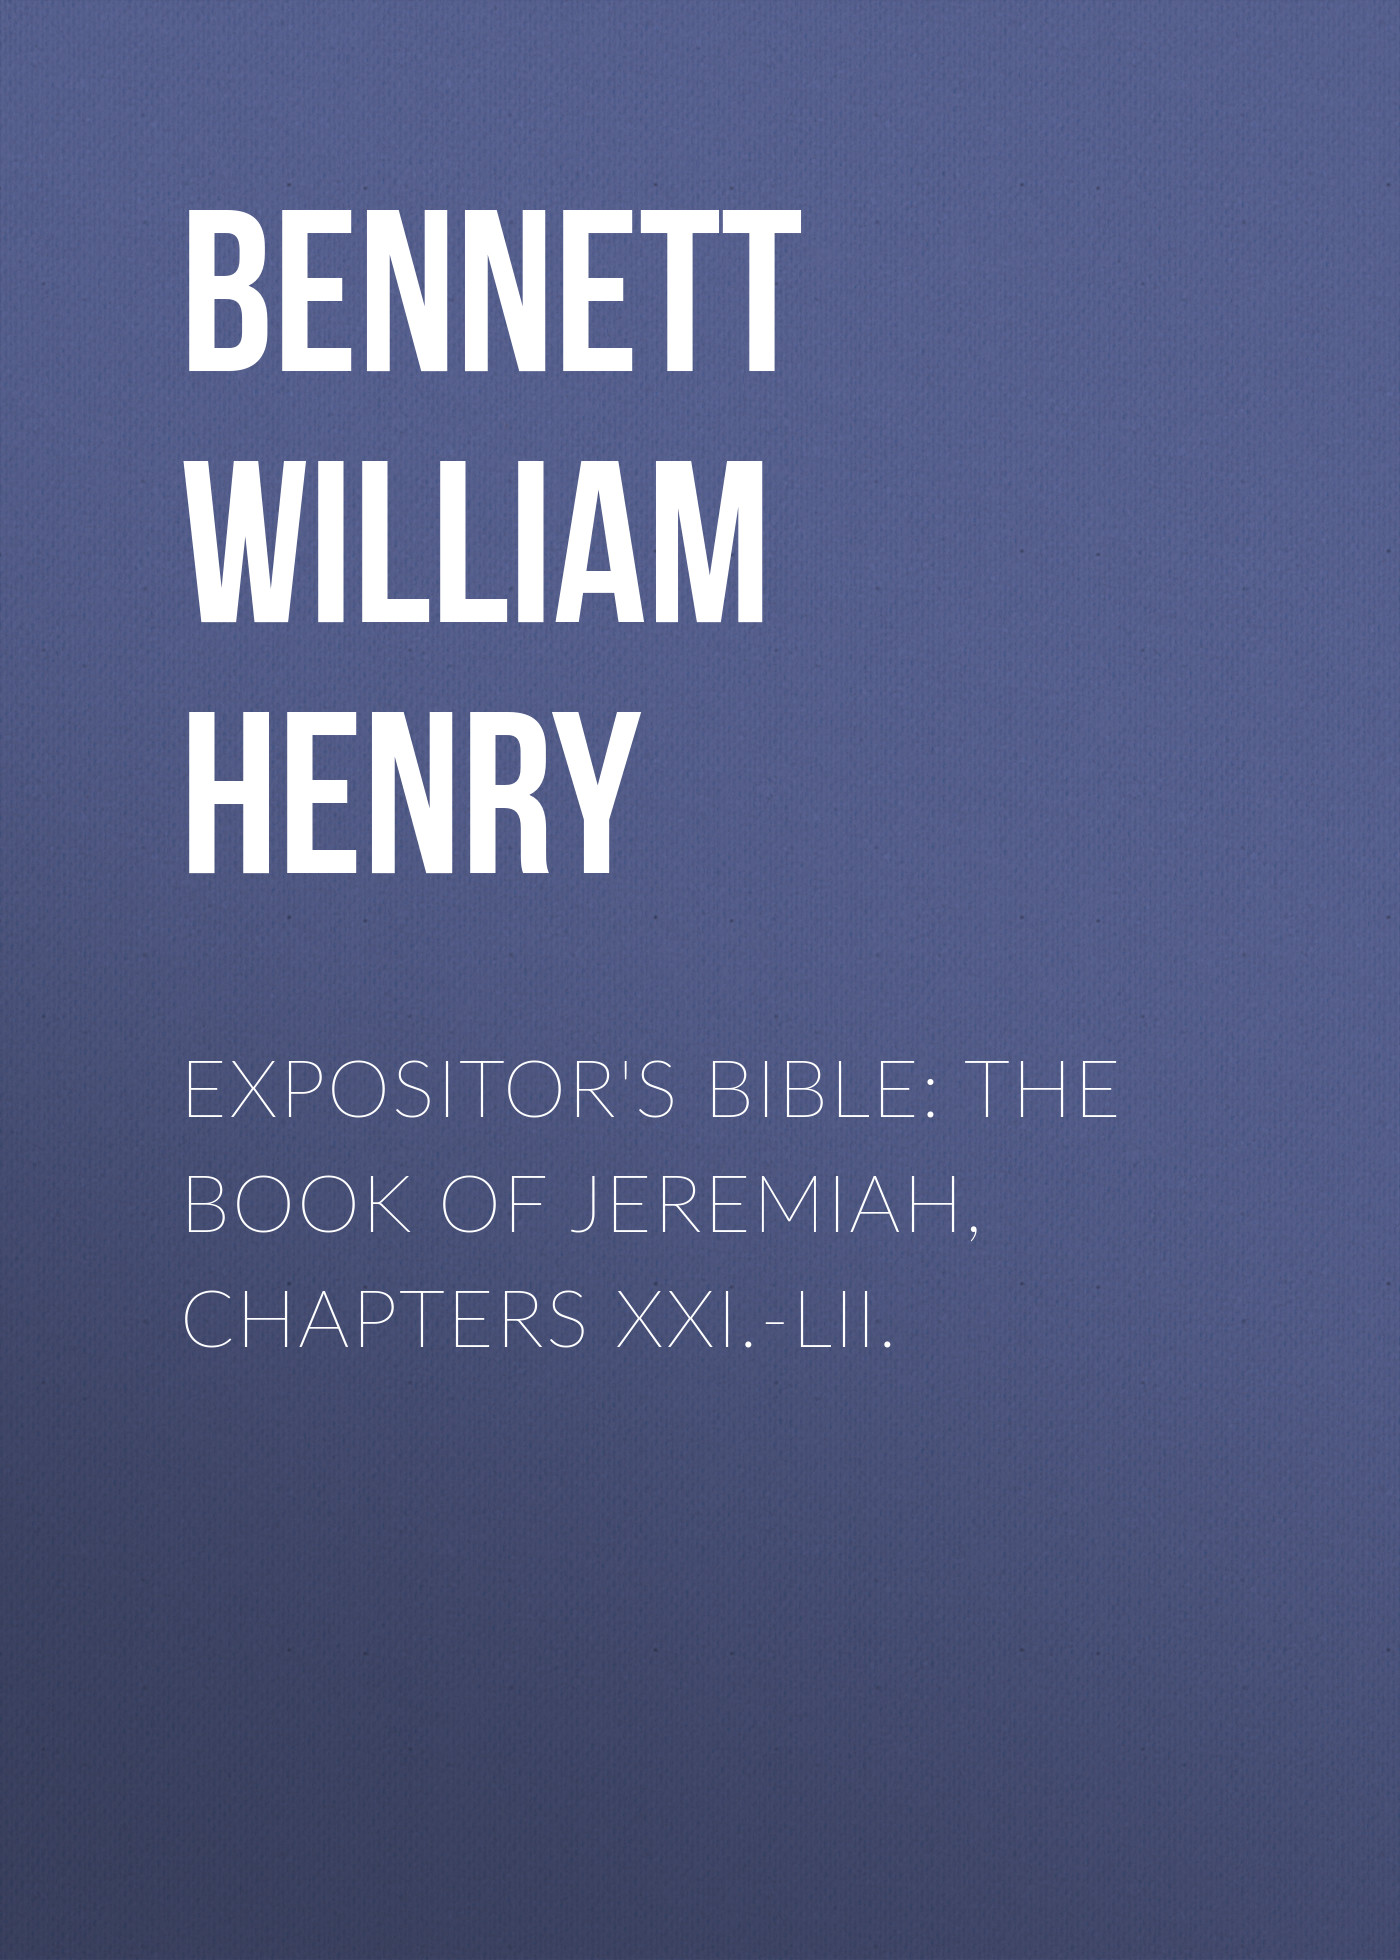 Фото - Bennett William Henry Expositor's Bible: The Book of Jeremiah, Chapters XXI.-LII. liitokala lii 402 lii 202 lii 100 lii s1 charger can be charged 1 2v 3 7v aa aaa 26650 18650 16340 lithium battery smart